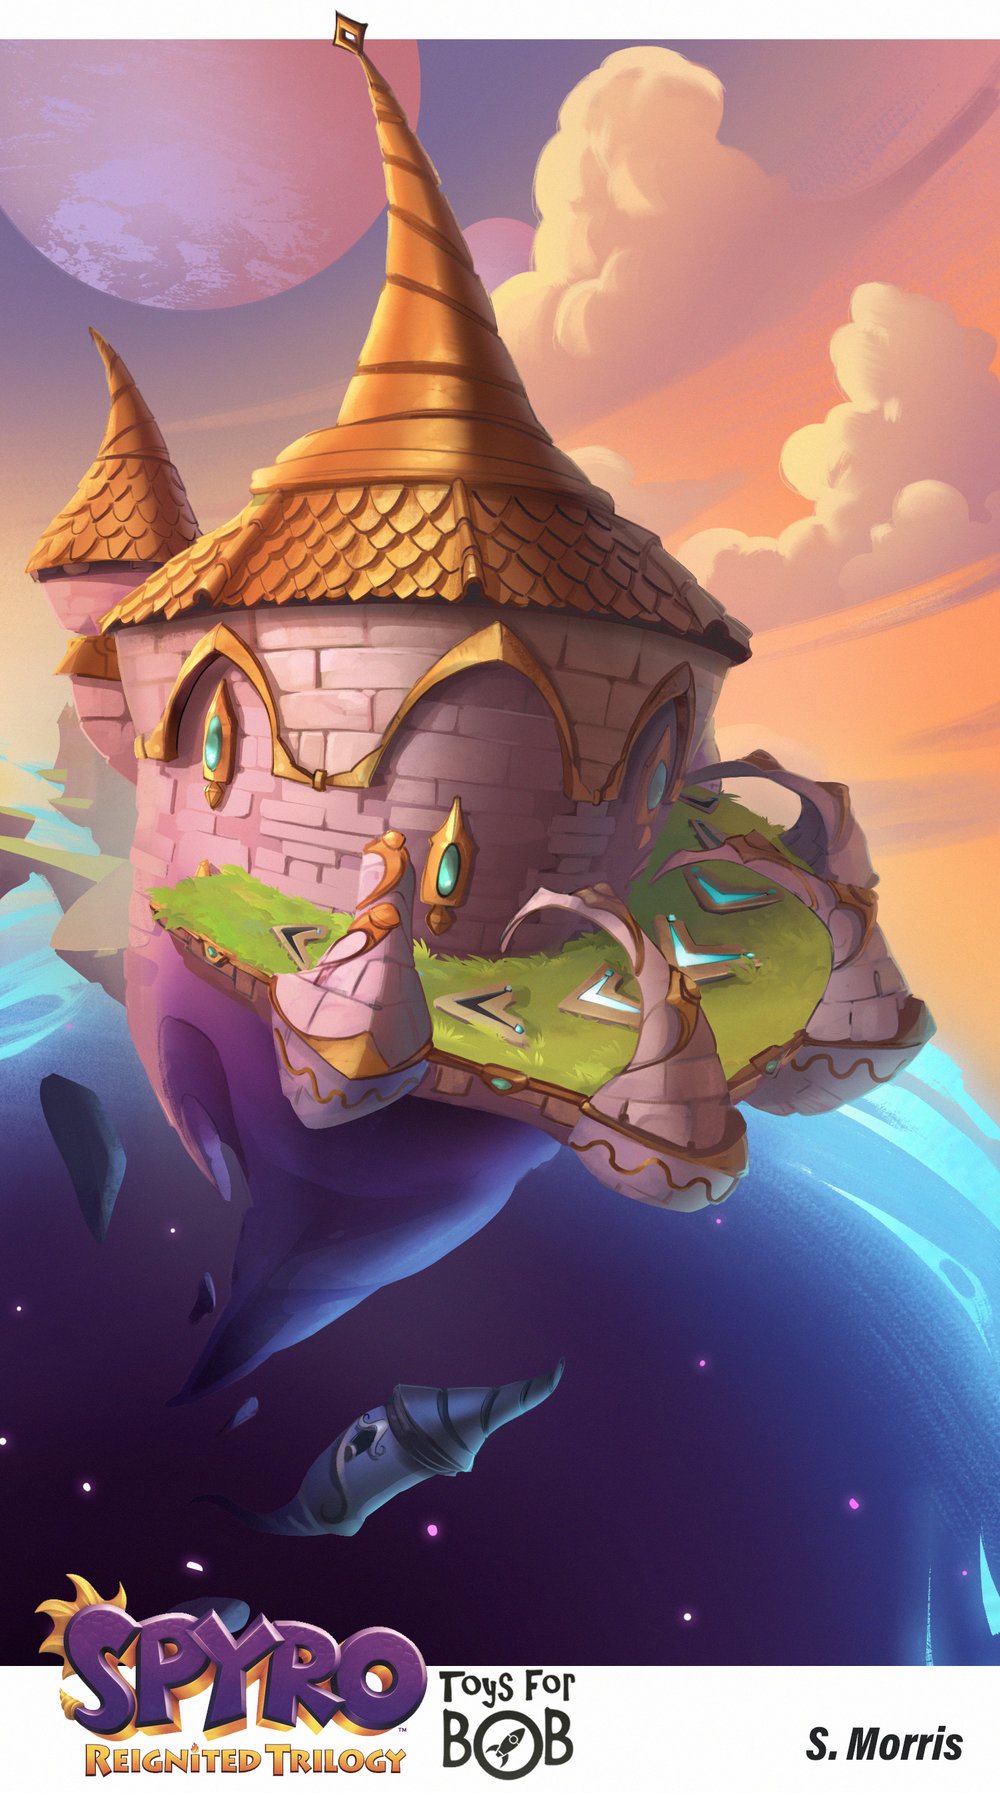 Spyro_FloatingCastle_LoftyPassage_Ver01.jpg